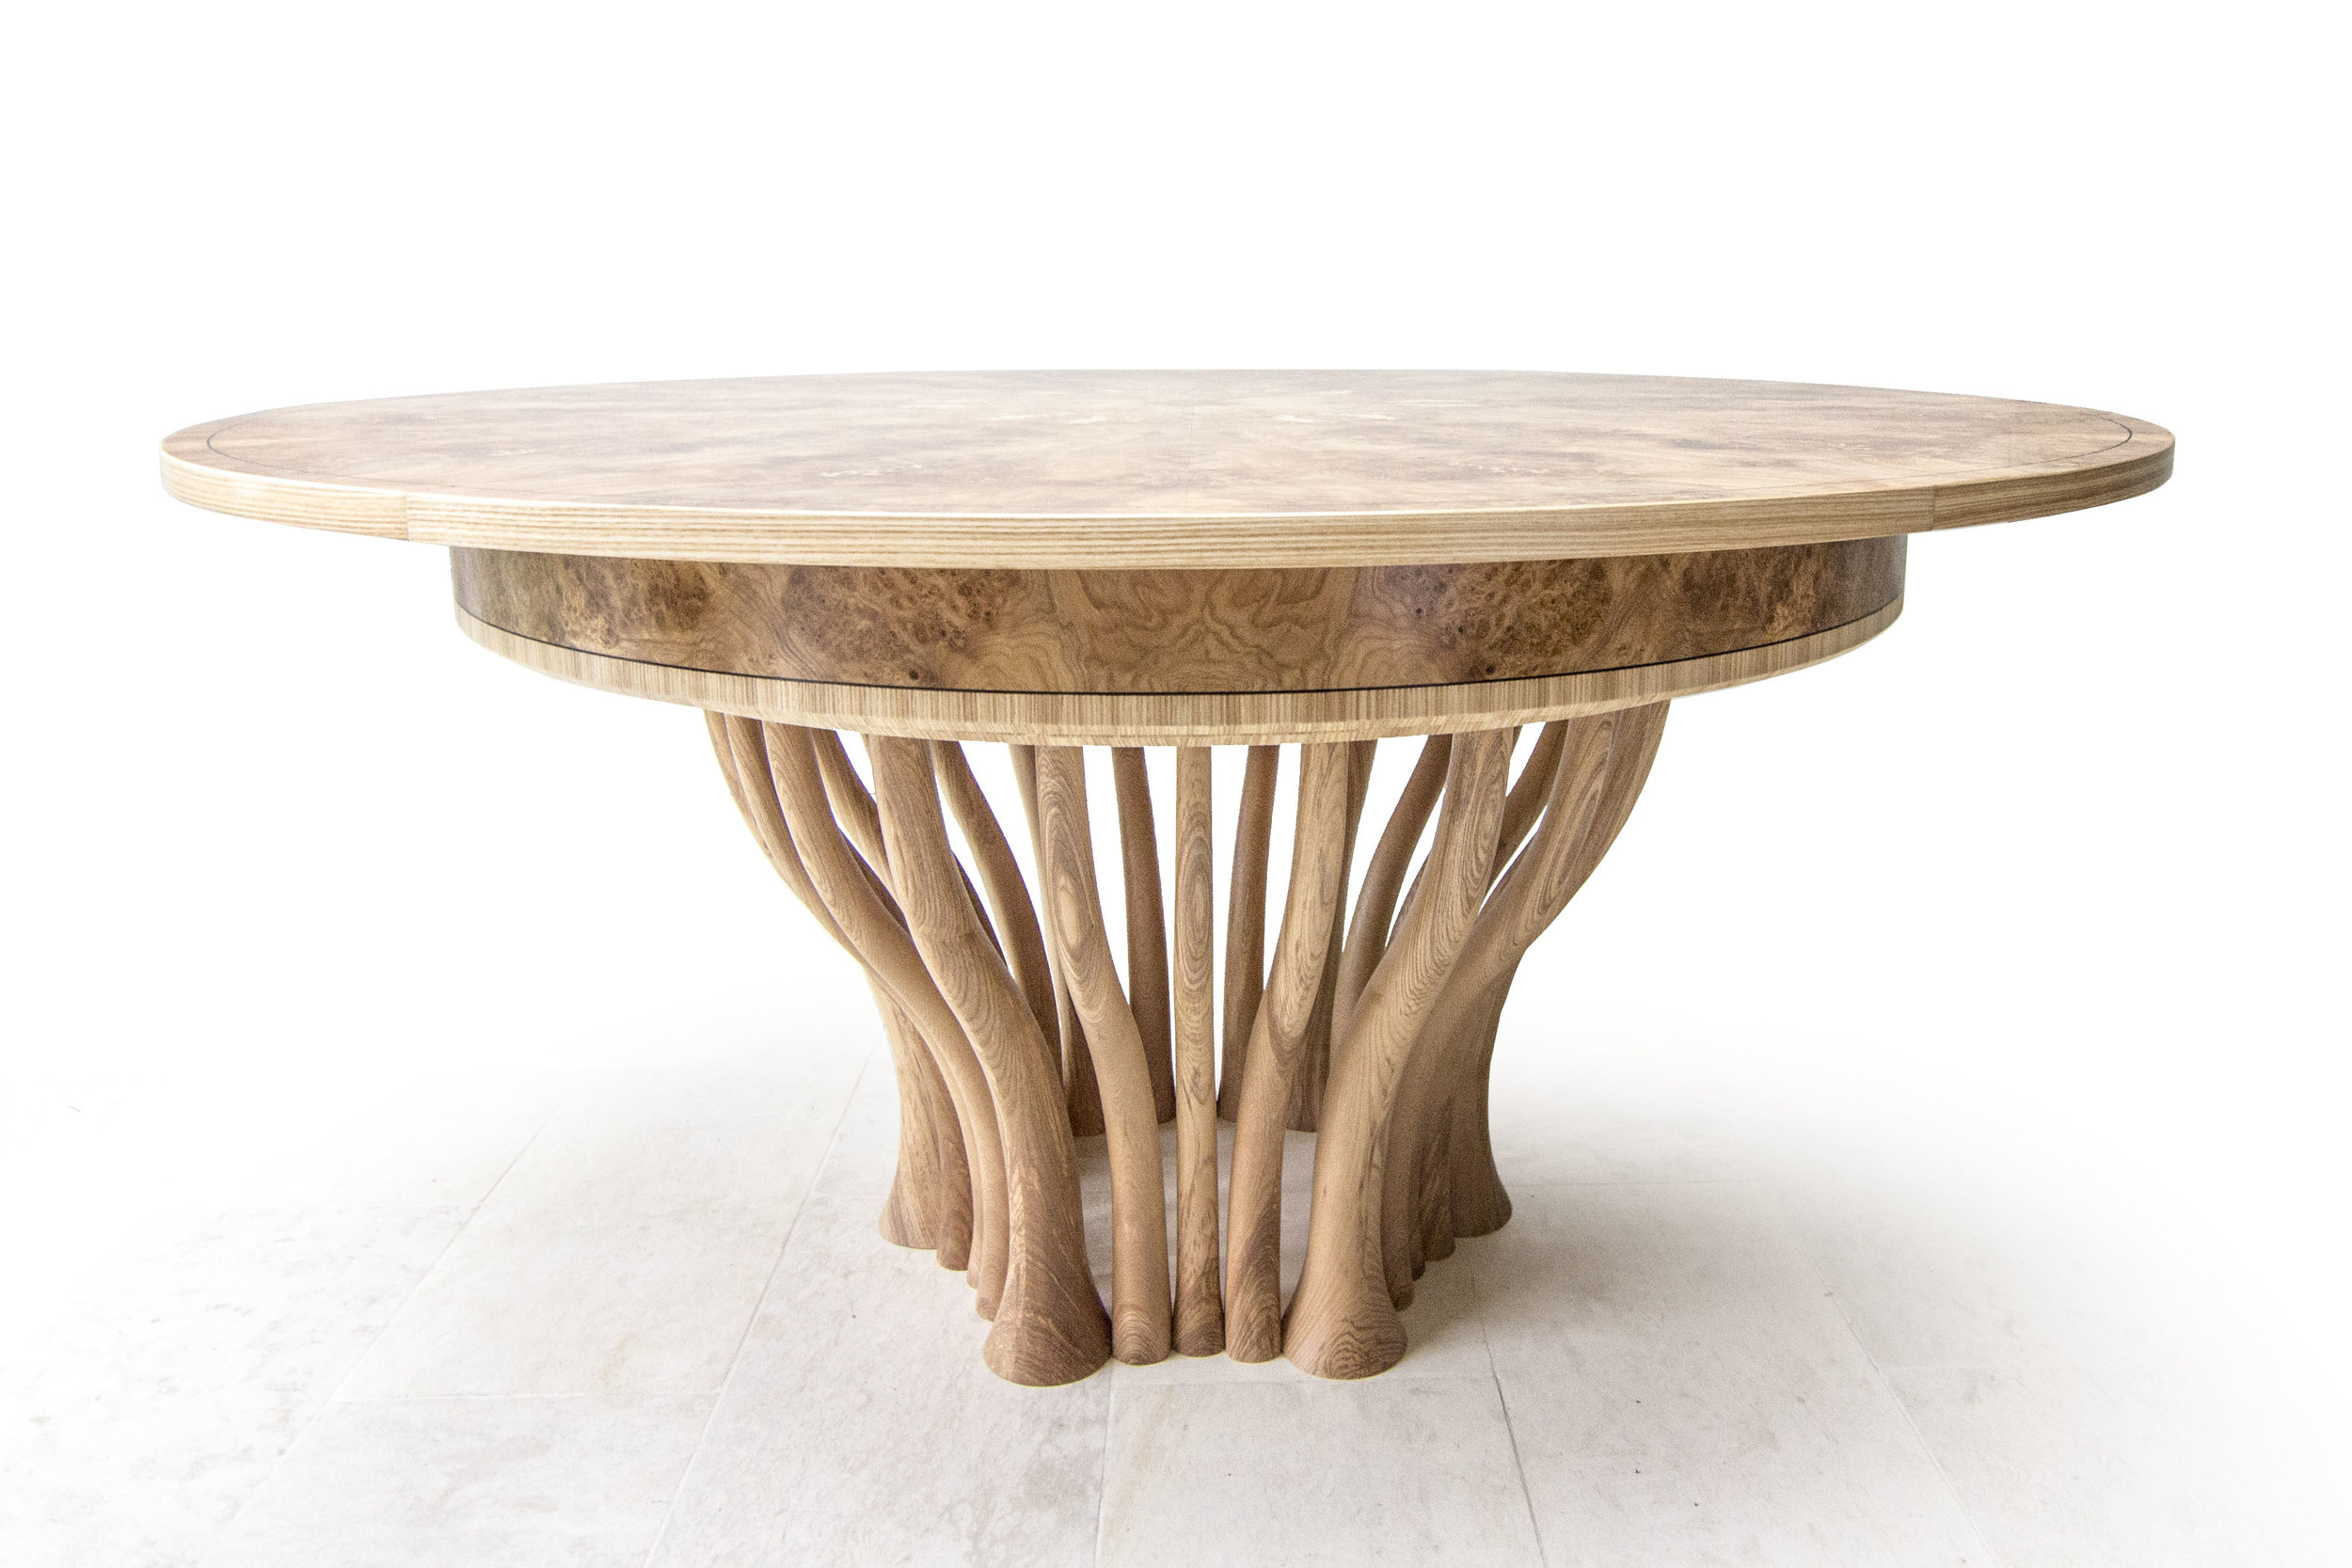 Olive Ash dining table 1500mm to 1900mm 01.jpg